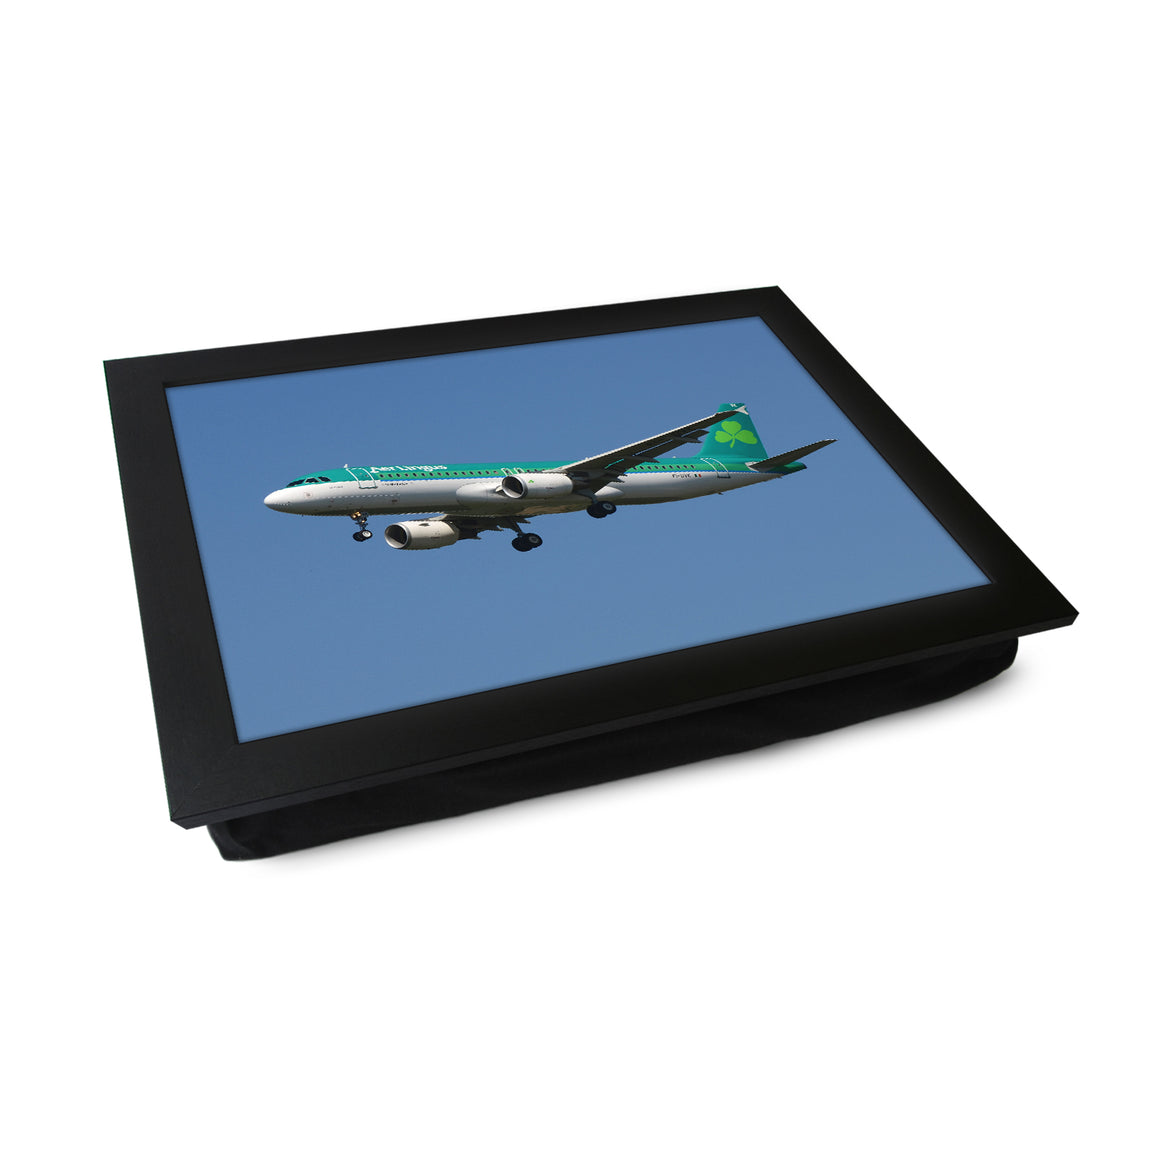 Airbus A320 Plane Lap Tray - AD13501